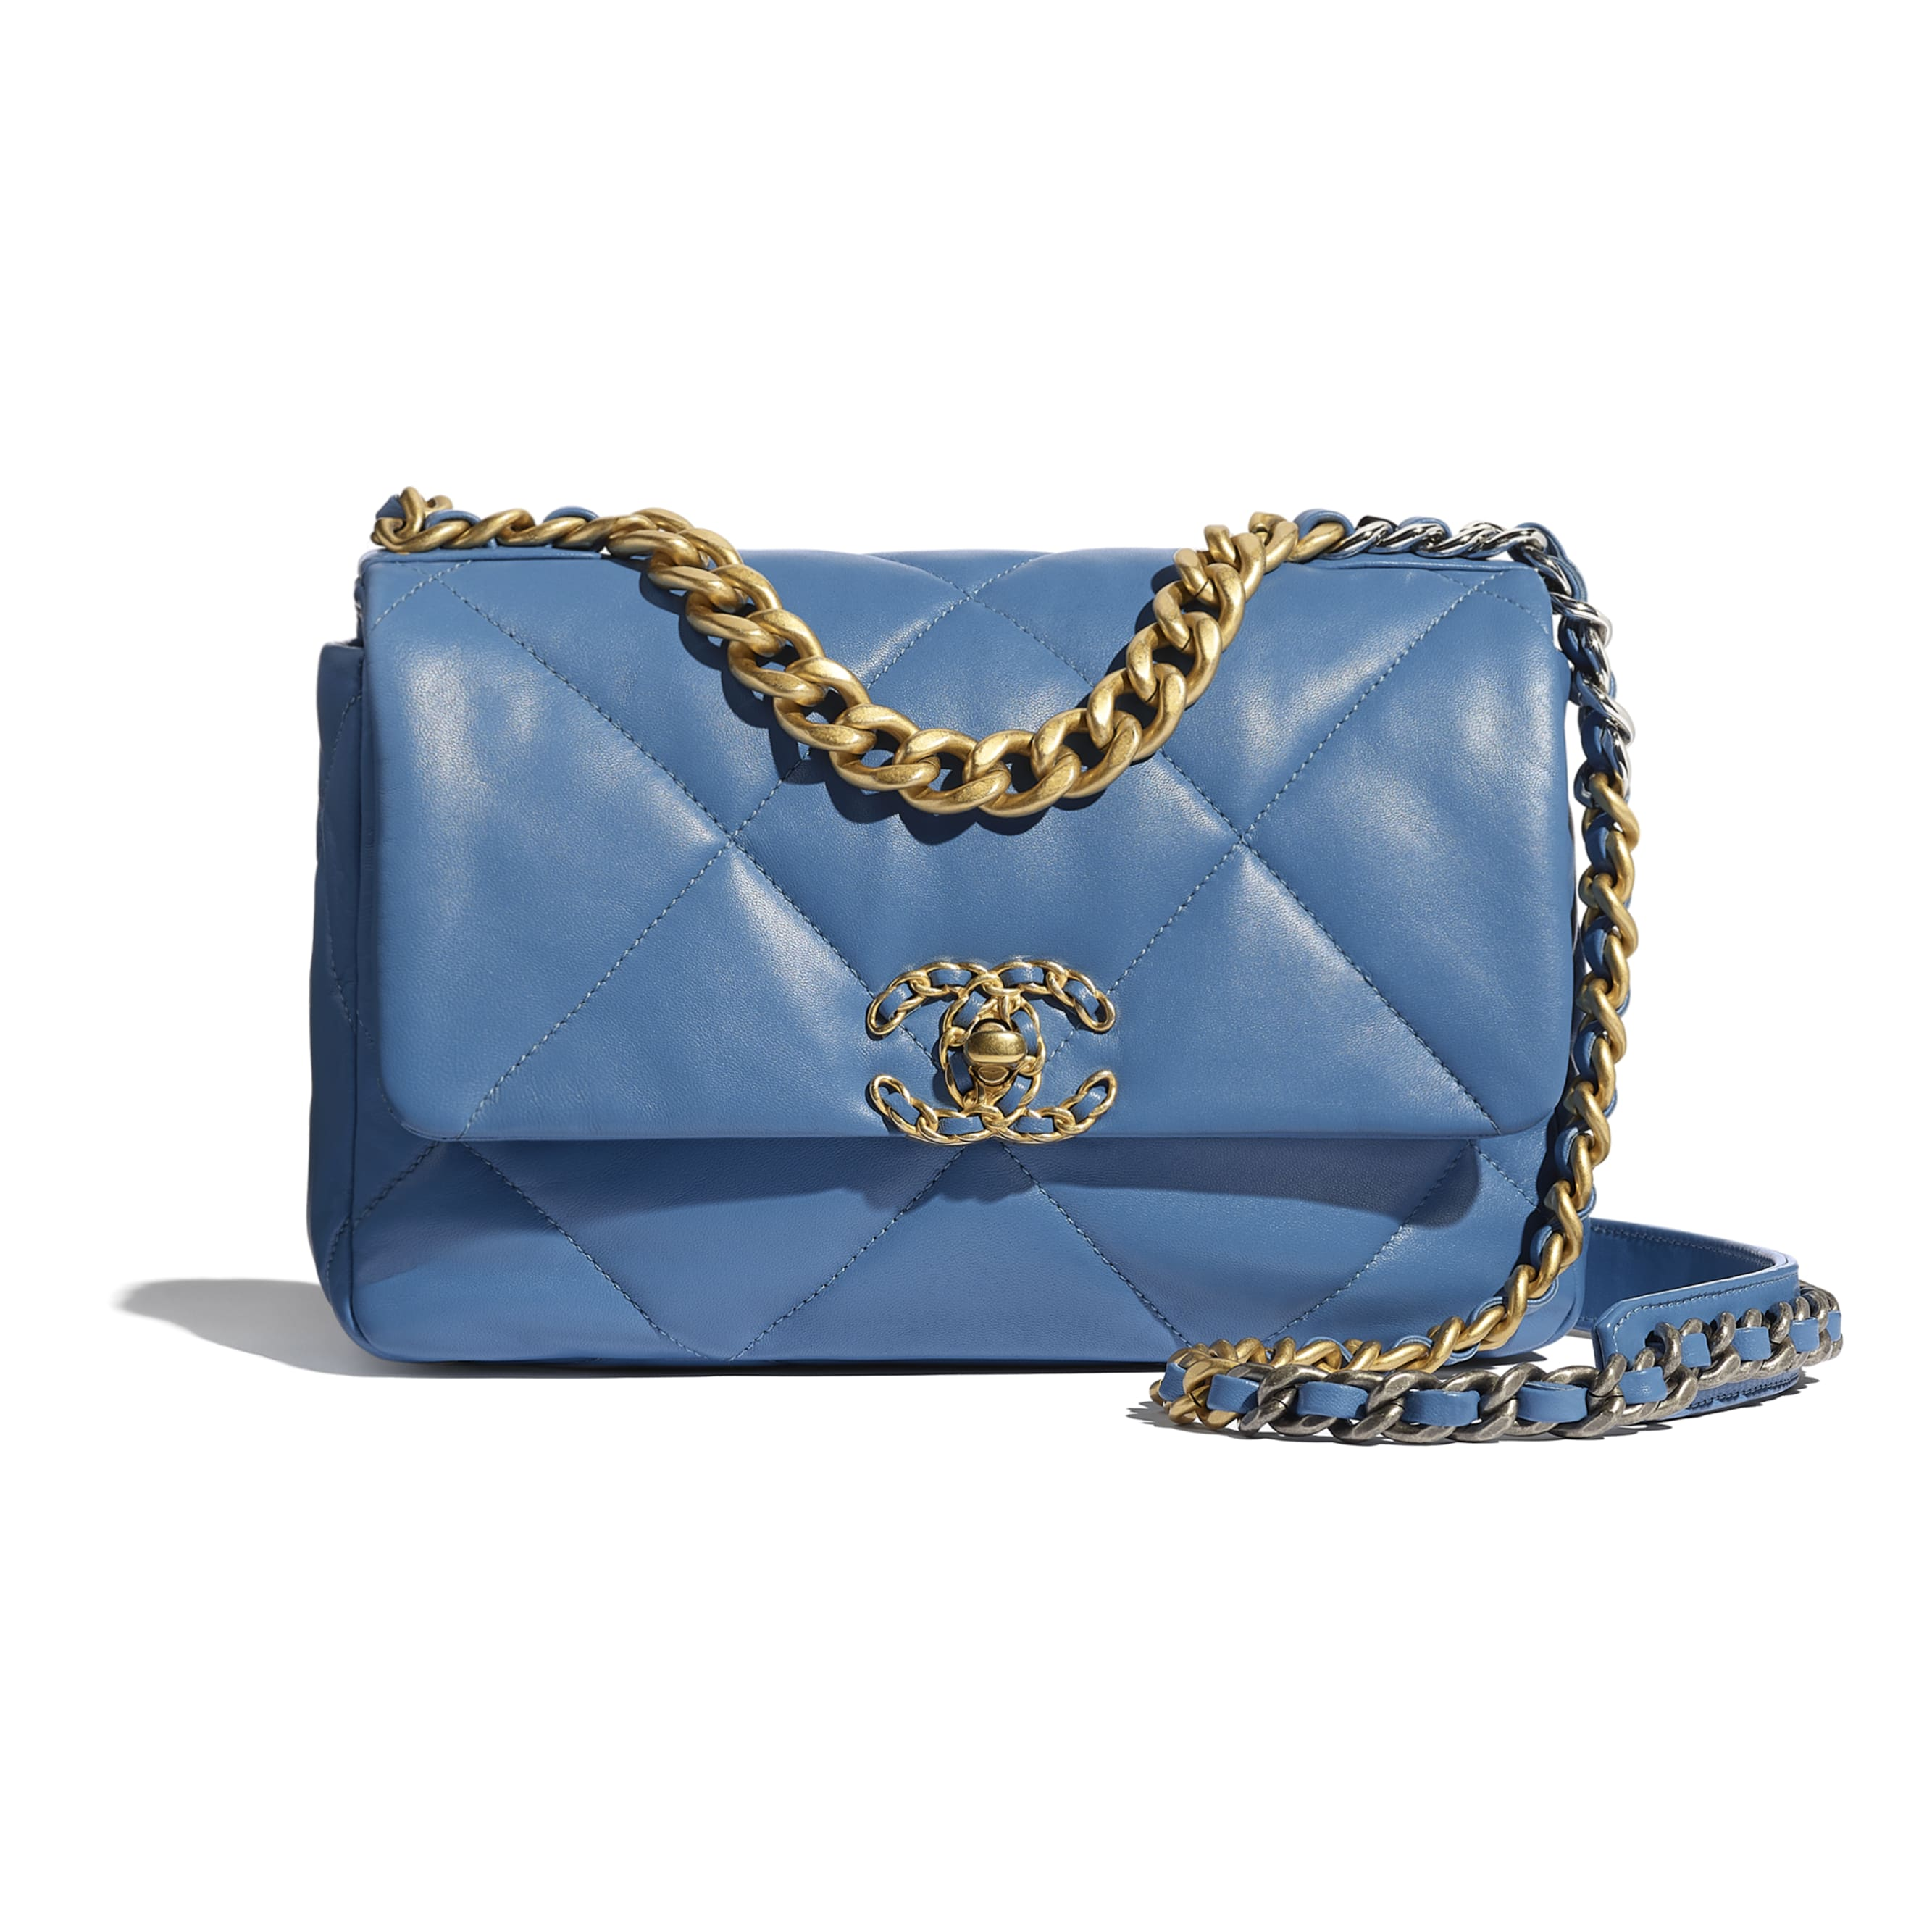 CHANEL 19 Flap Bag - Blue - Lambskin, Gold-Tone, Silver-Tone & Ruthenium-Finish Metal - CHANEL - Default view - see standard sized version